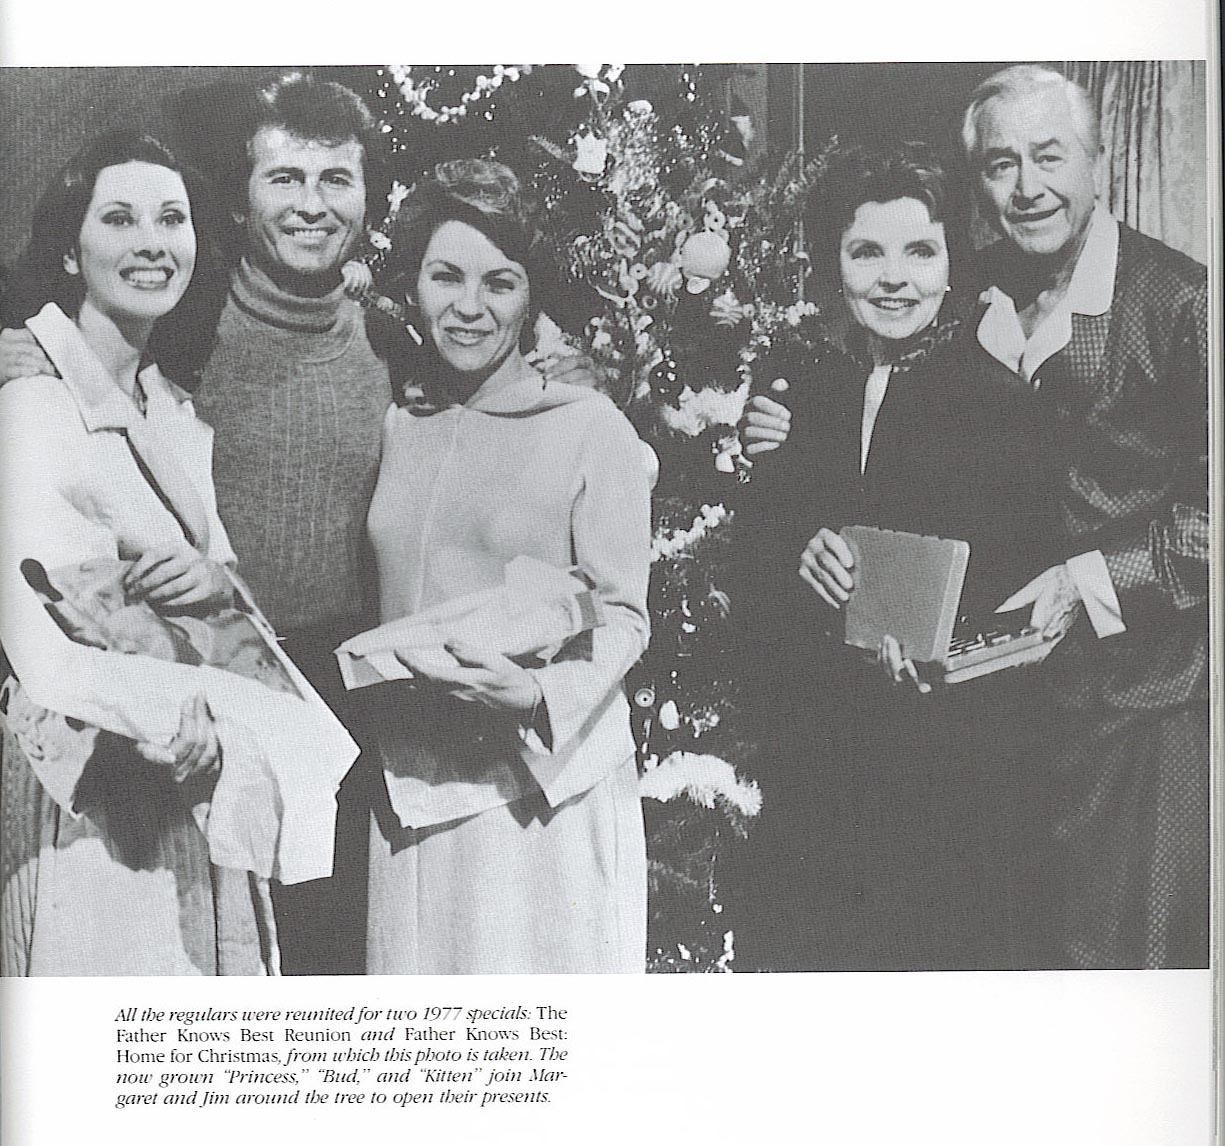 father knows best sitcoms online photo galleries - Father Knows Best Home For Christmas 1977